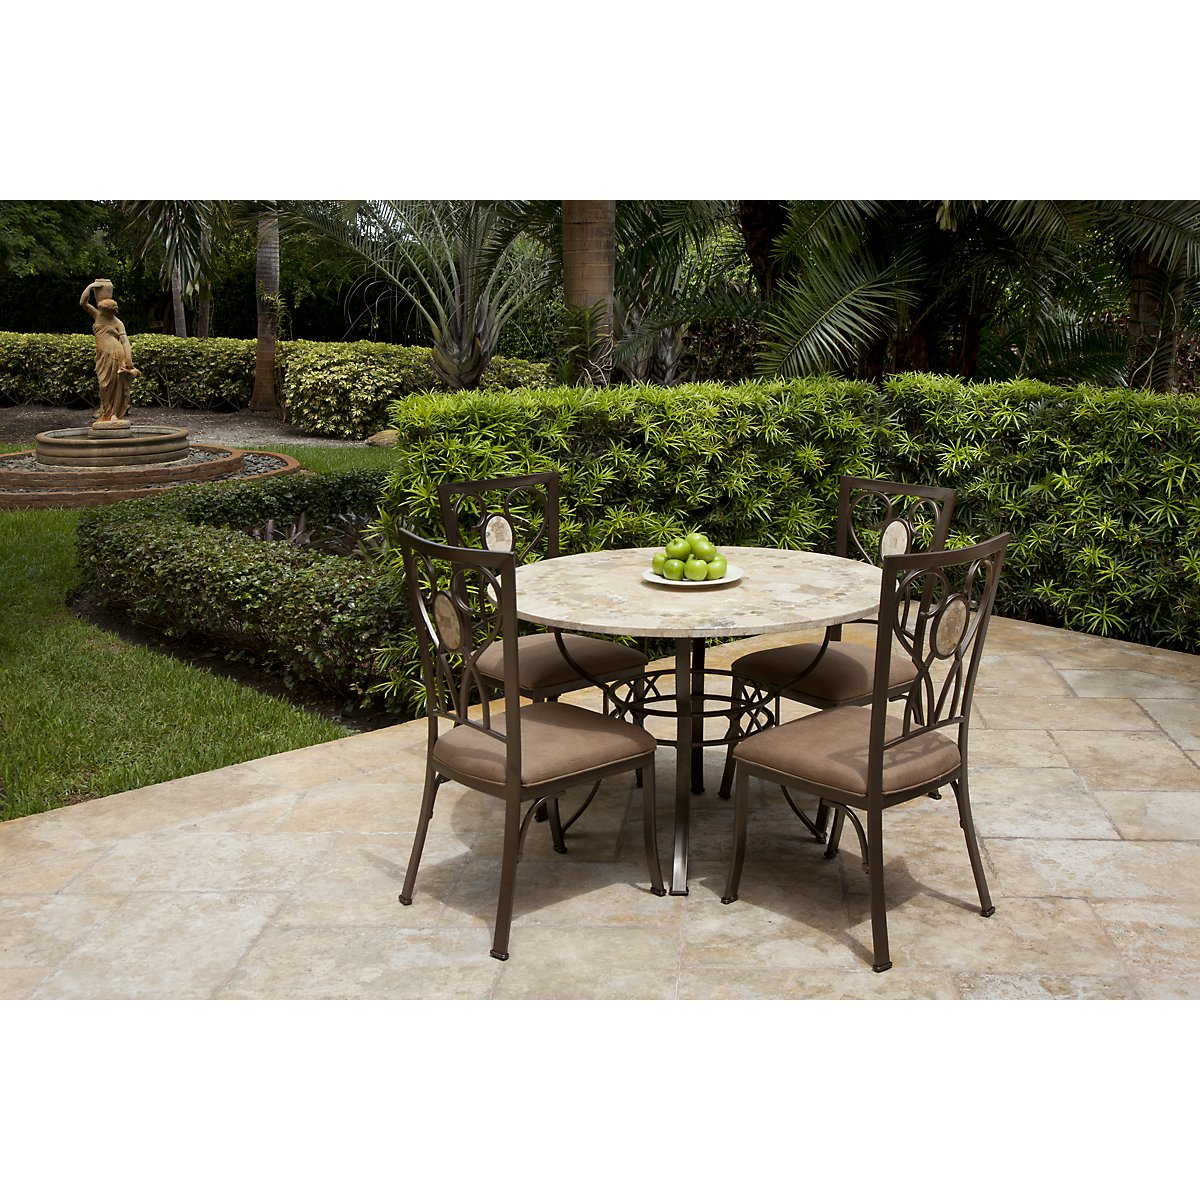 Brookside Round Stone Table Chairs - Coffee table with 4 chairs